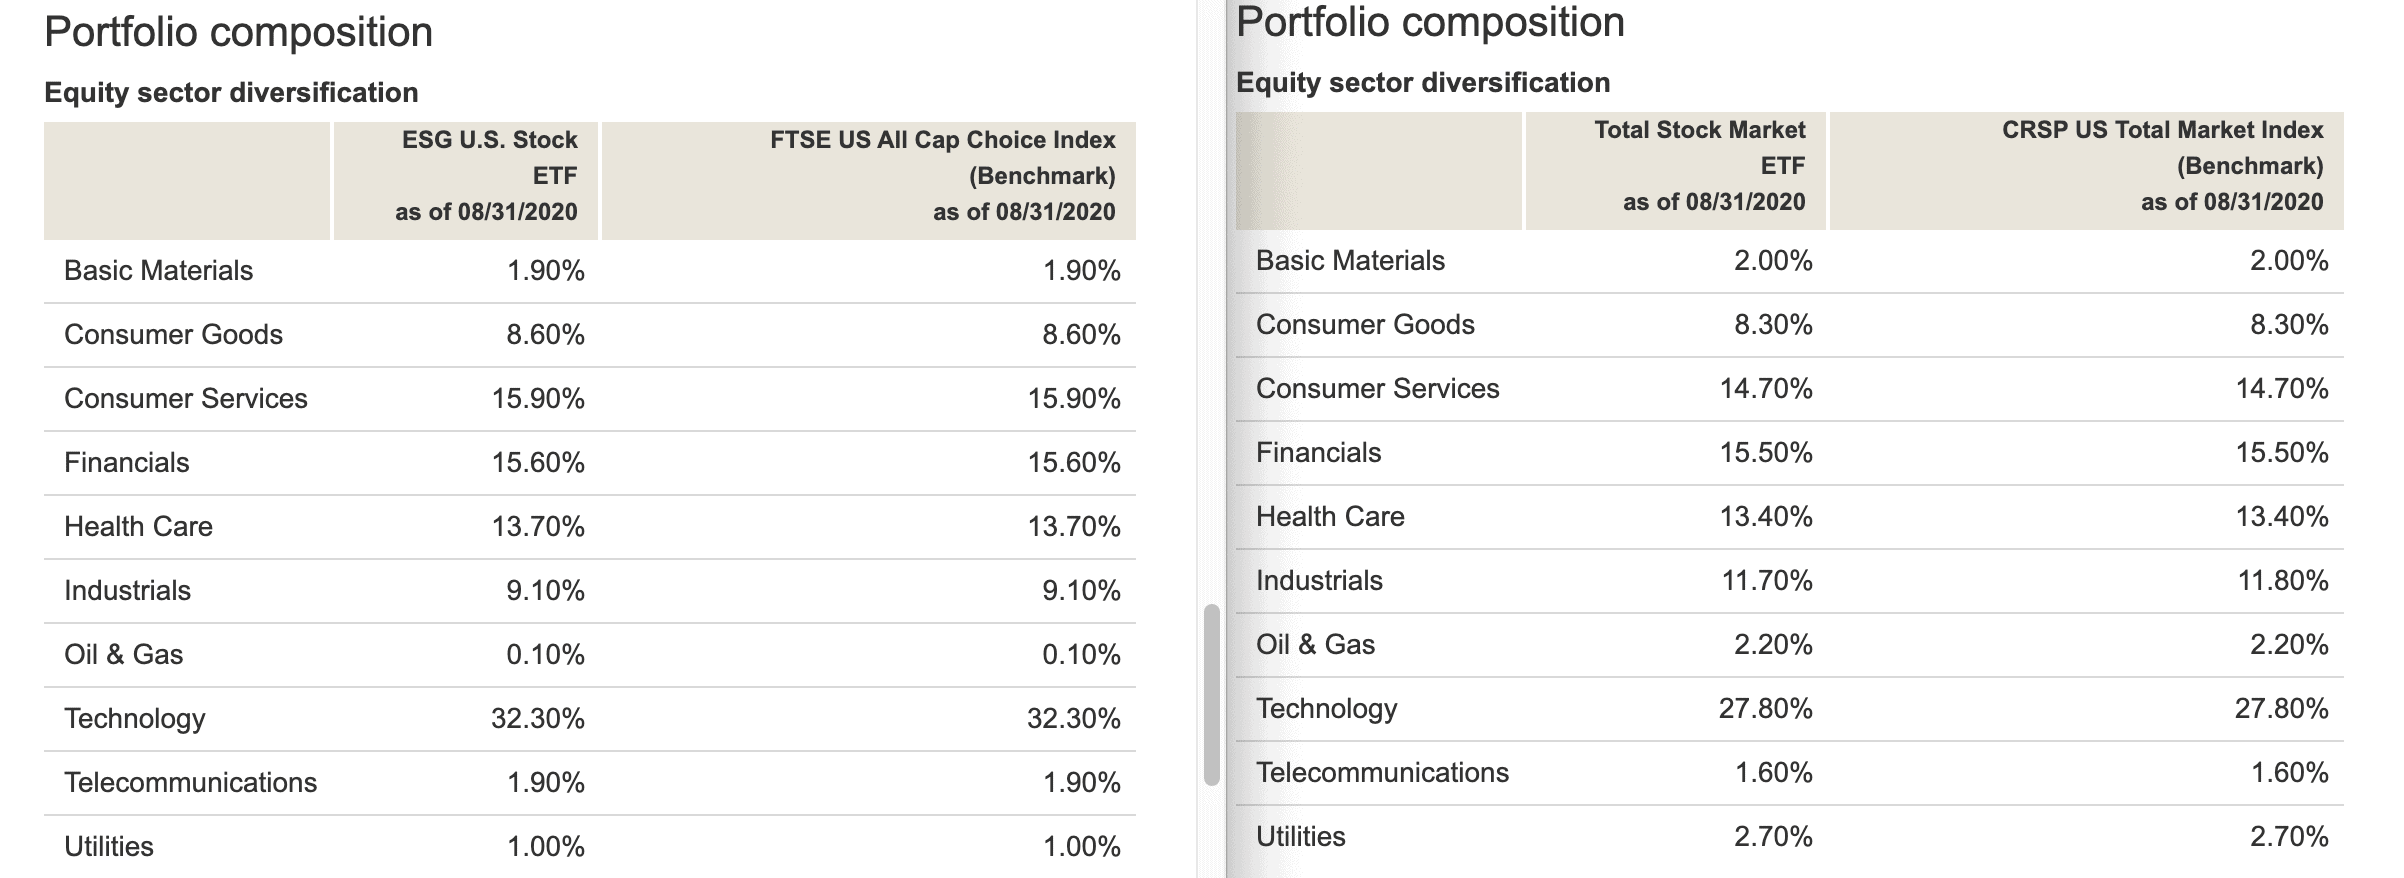 ESG vs Total Market Portfolio Composition